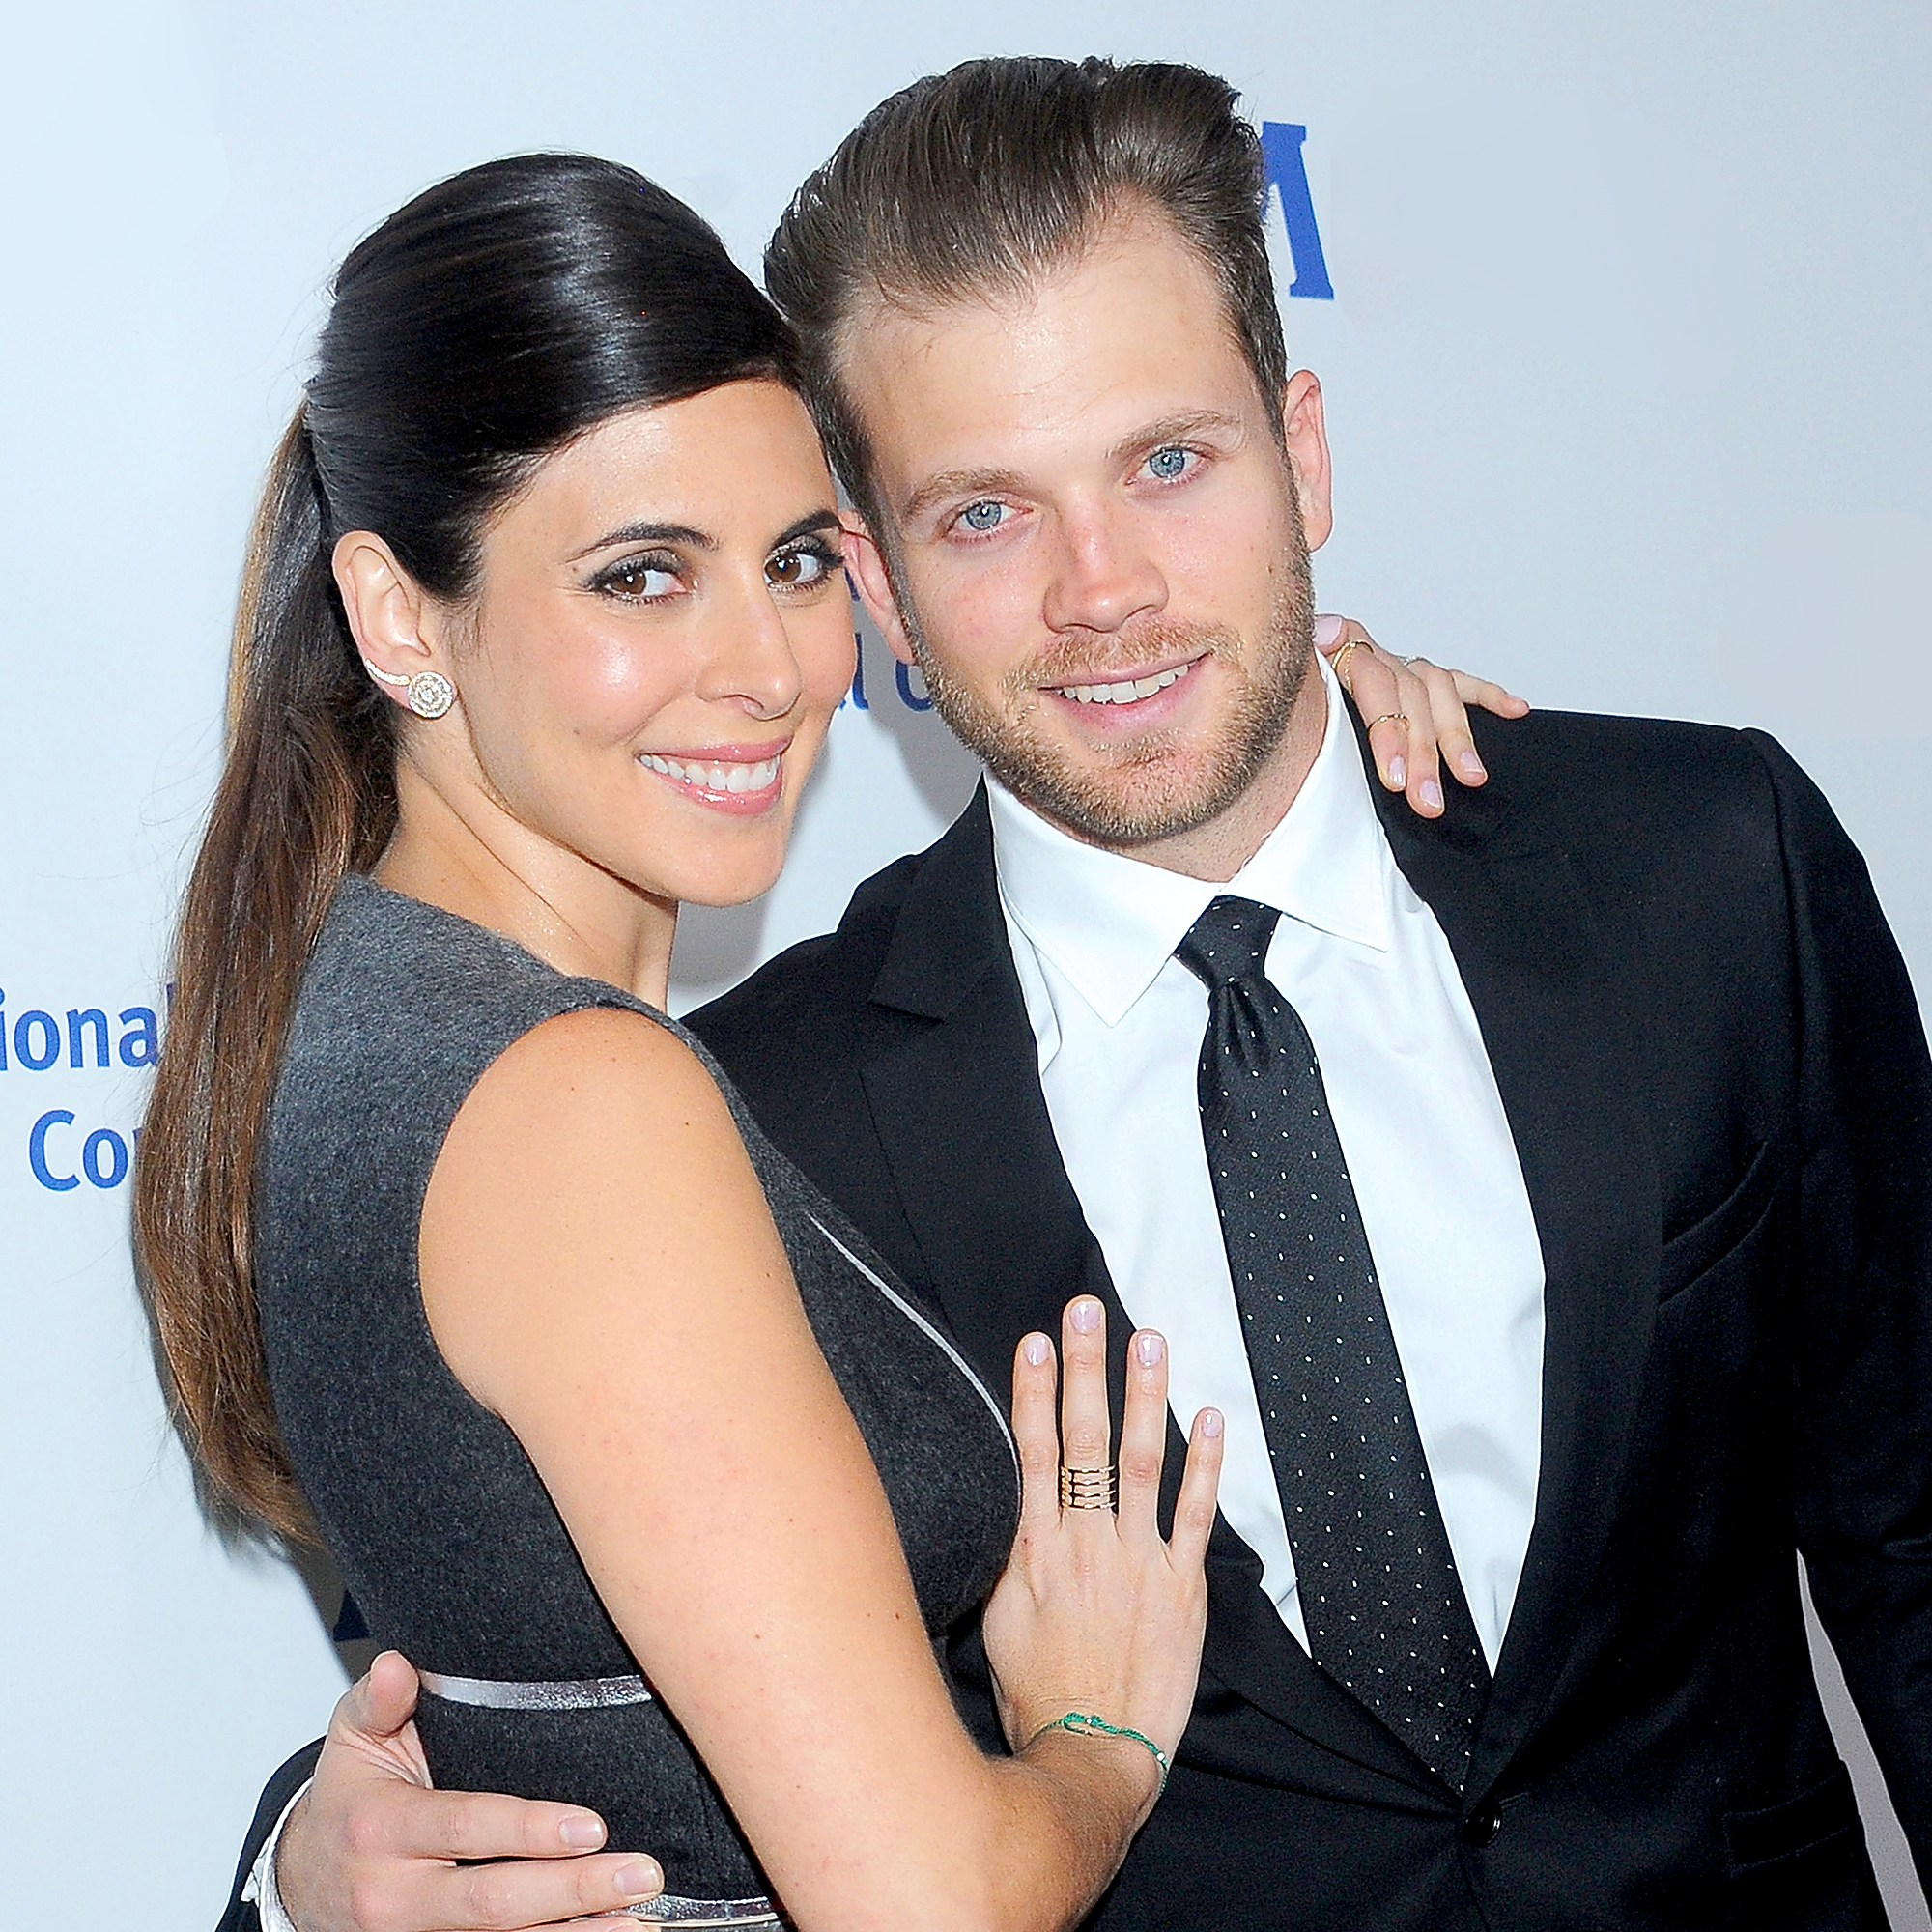 Jamie-Lynn Sigler and Cutter Dykstra arrive at the International Medical Corps' Annual Awards dinner ceremony at the Beverly Wilshire Four Seasons Hotel in Beverly Hills, California.